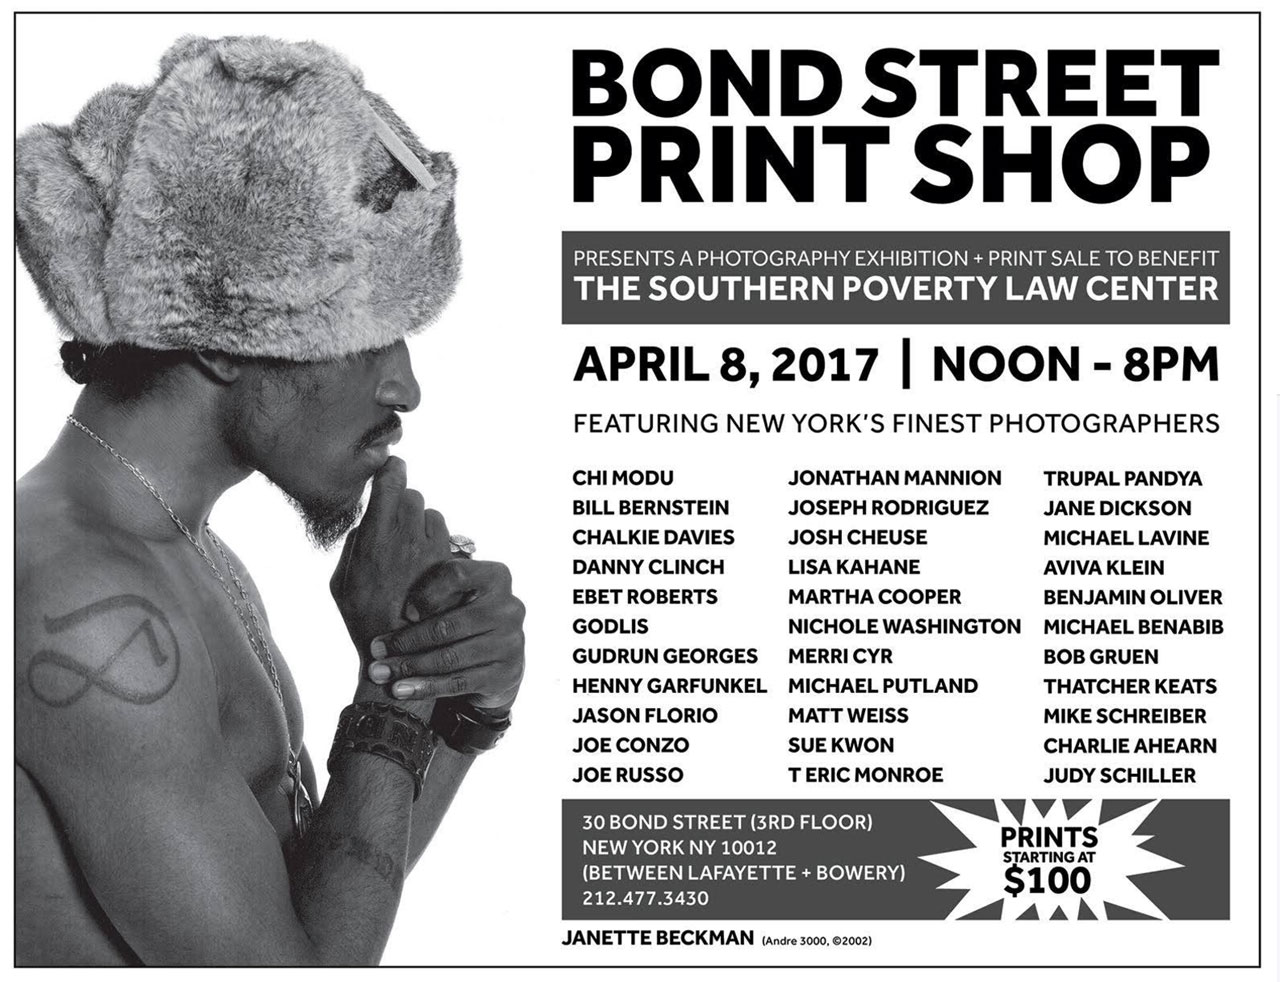 Print Sale - Bond Street Print Shop, NYC - Janette Beckman & Julie Grahame